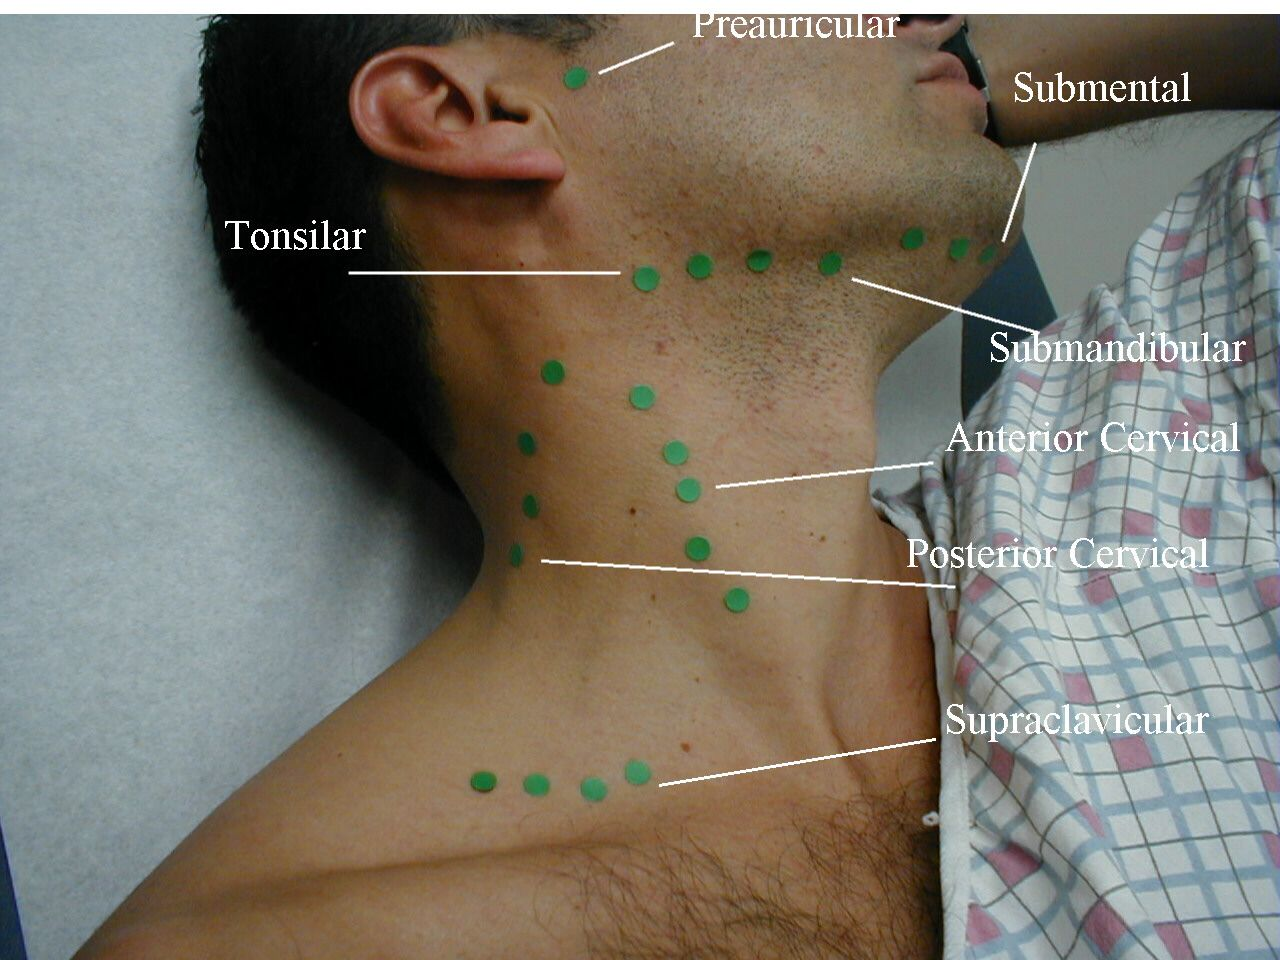 How to examine head and neck lymph nodes Read more at: http://forum ...